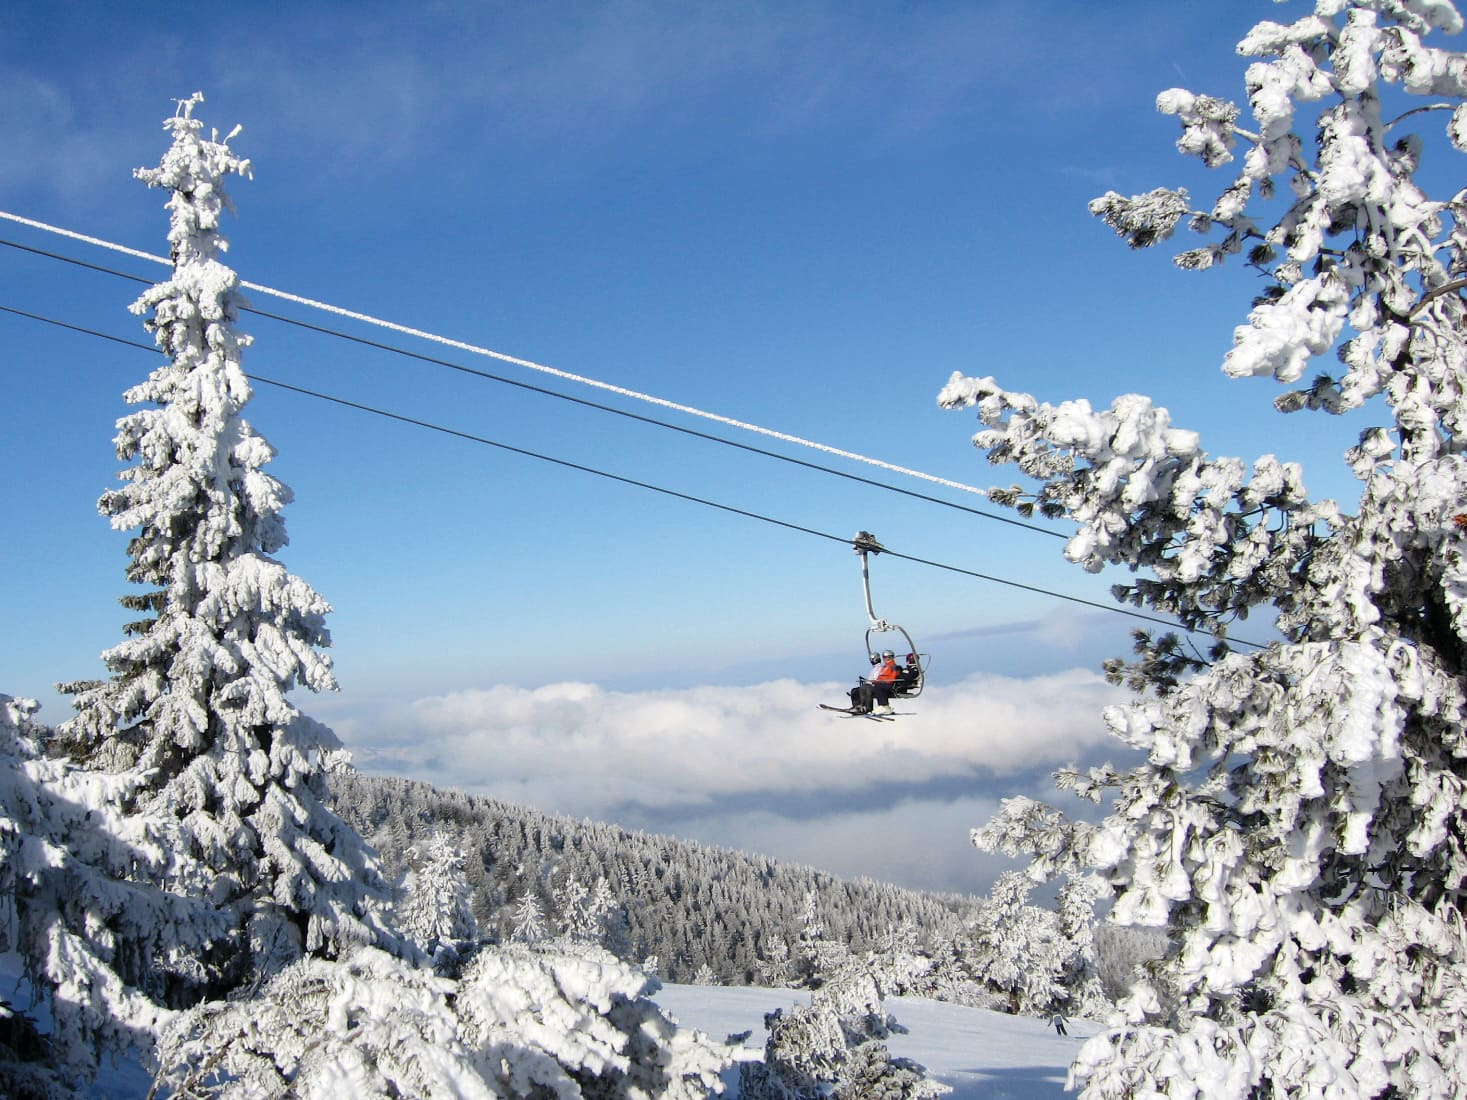 Chairlift in Borovets, Bulgaria